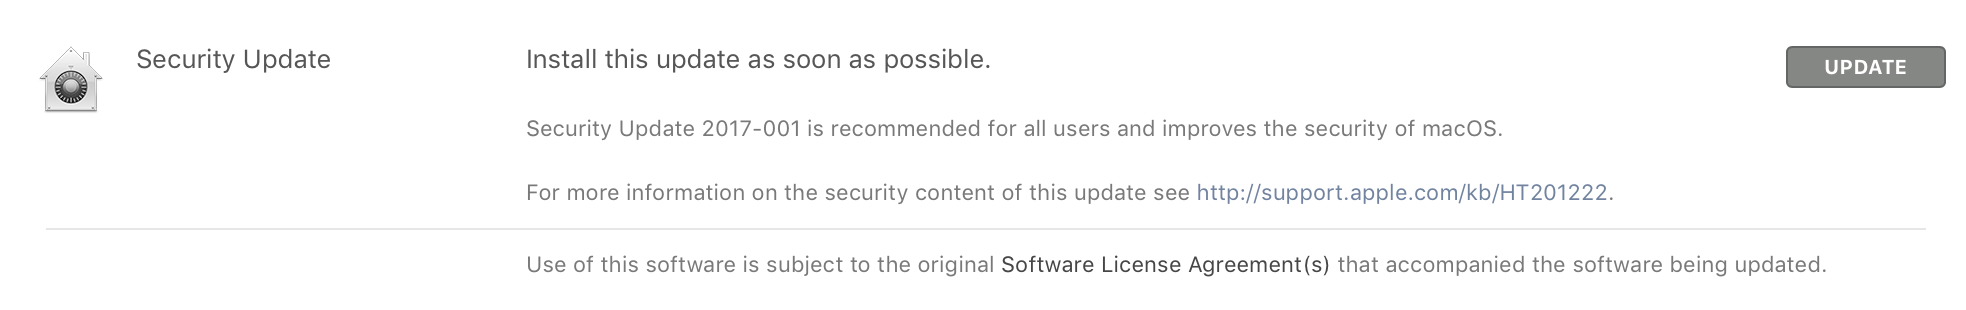 apple_macos_10_13_1_security_update_2017_001